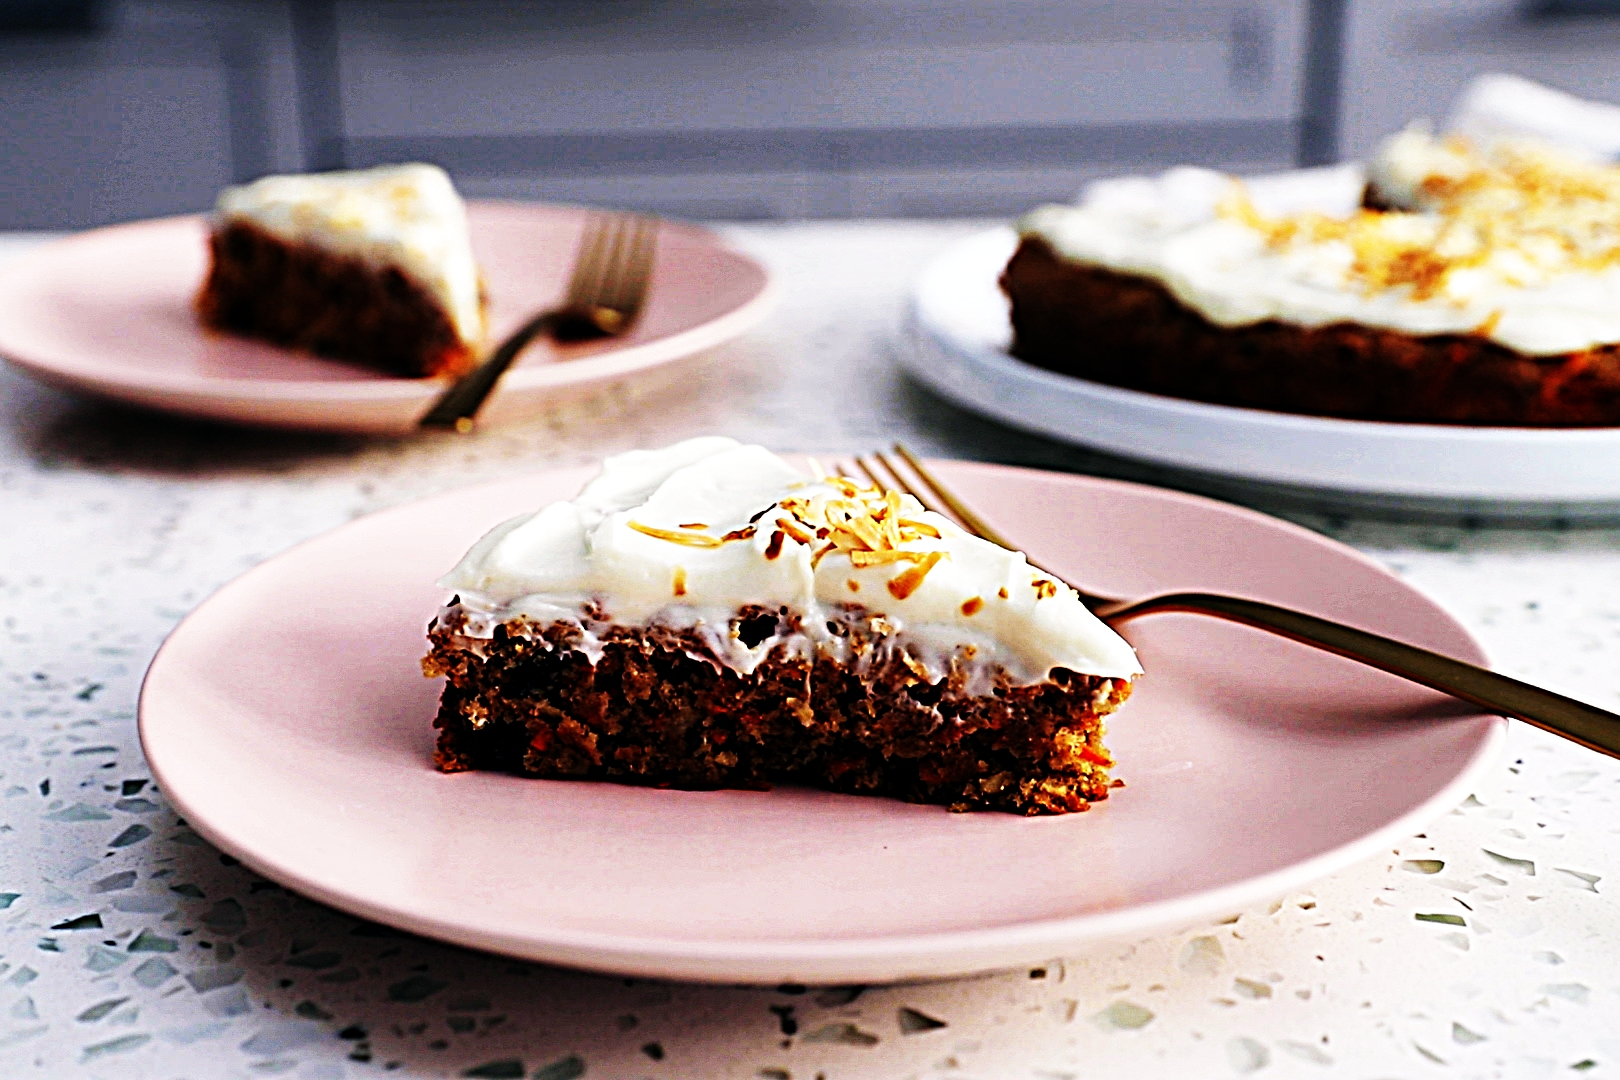 Stupid-Easy Recipe for Gluten-Free Carrot Cake (#1 Top-Rated)